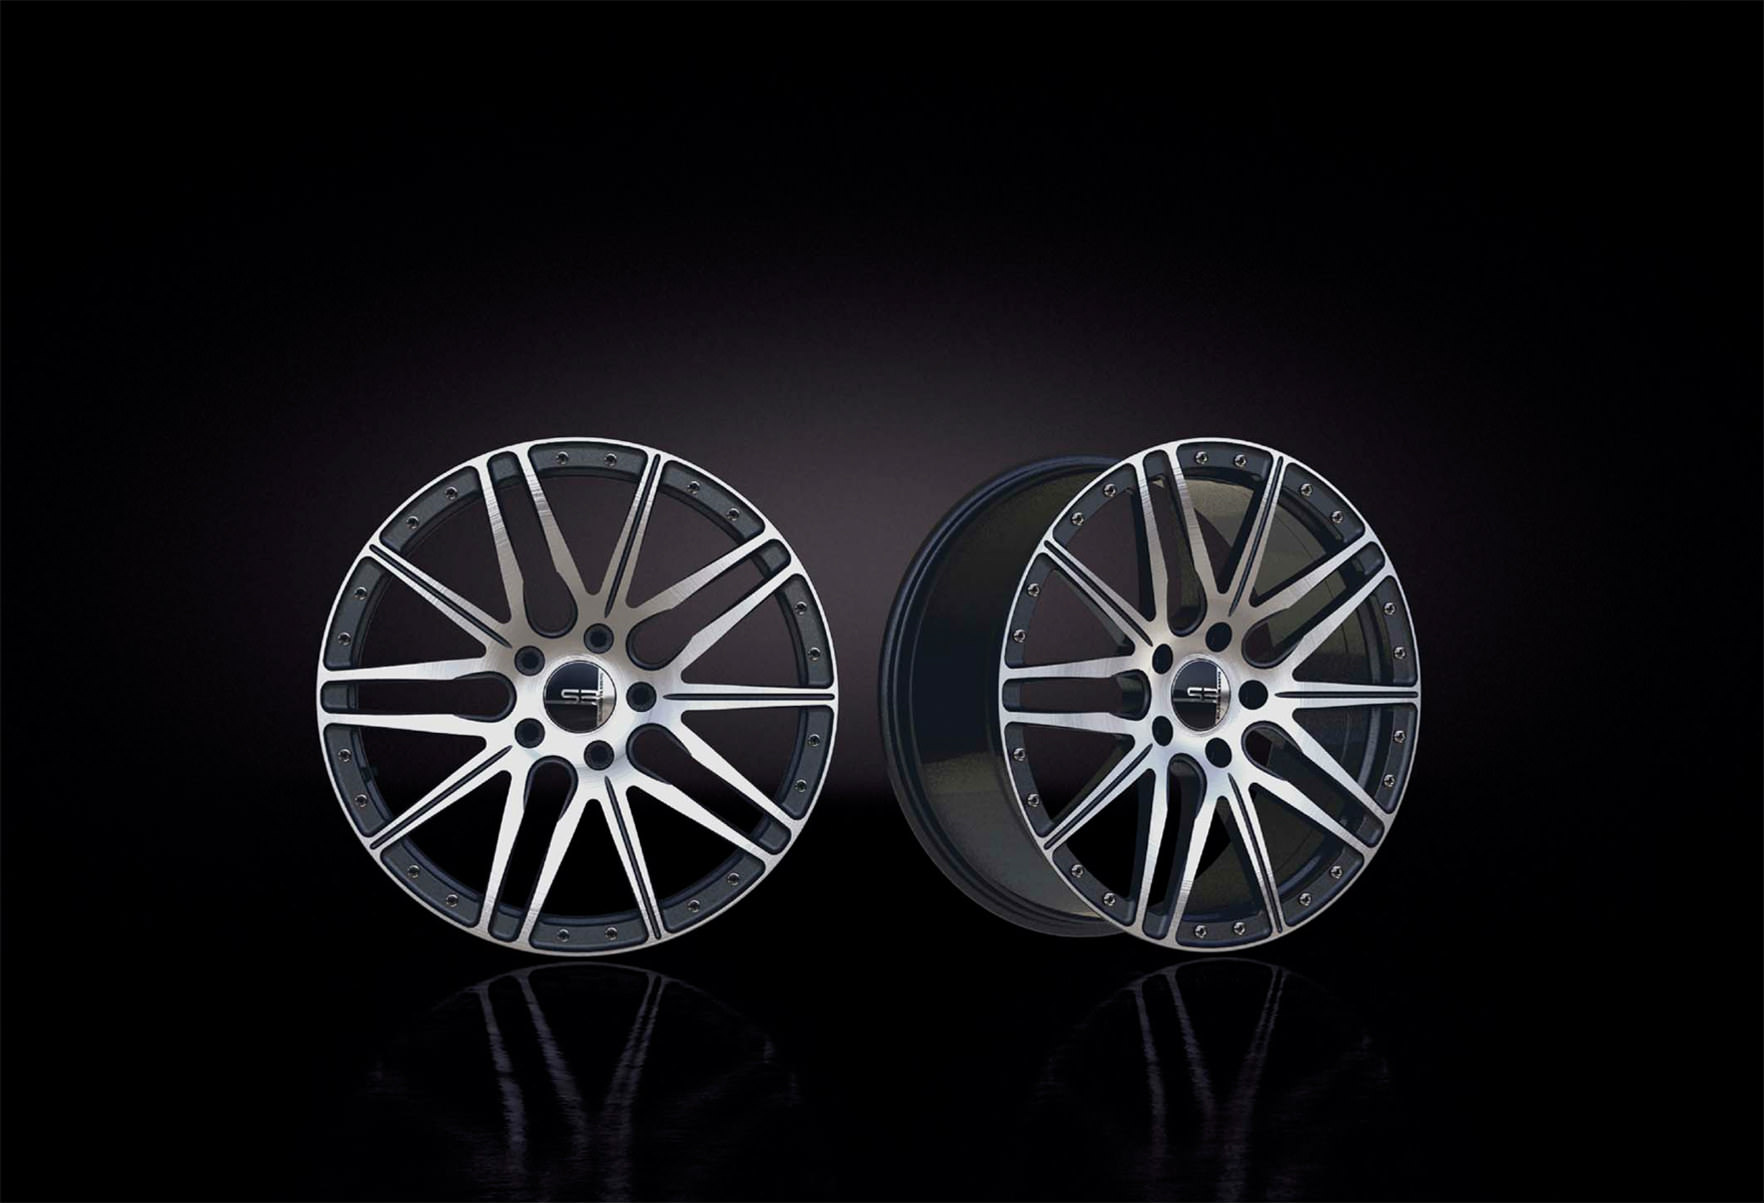 image of a pair of alloy wheels